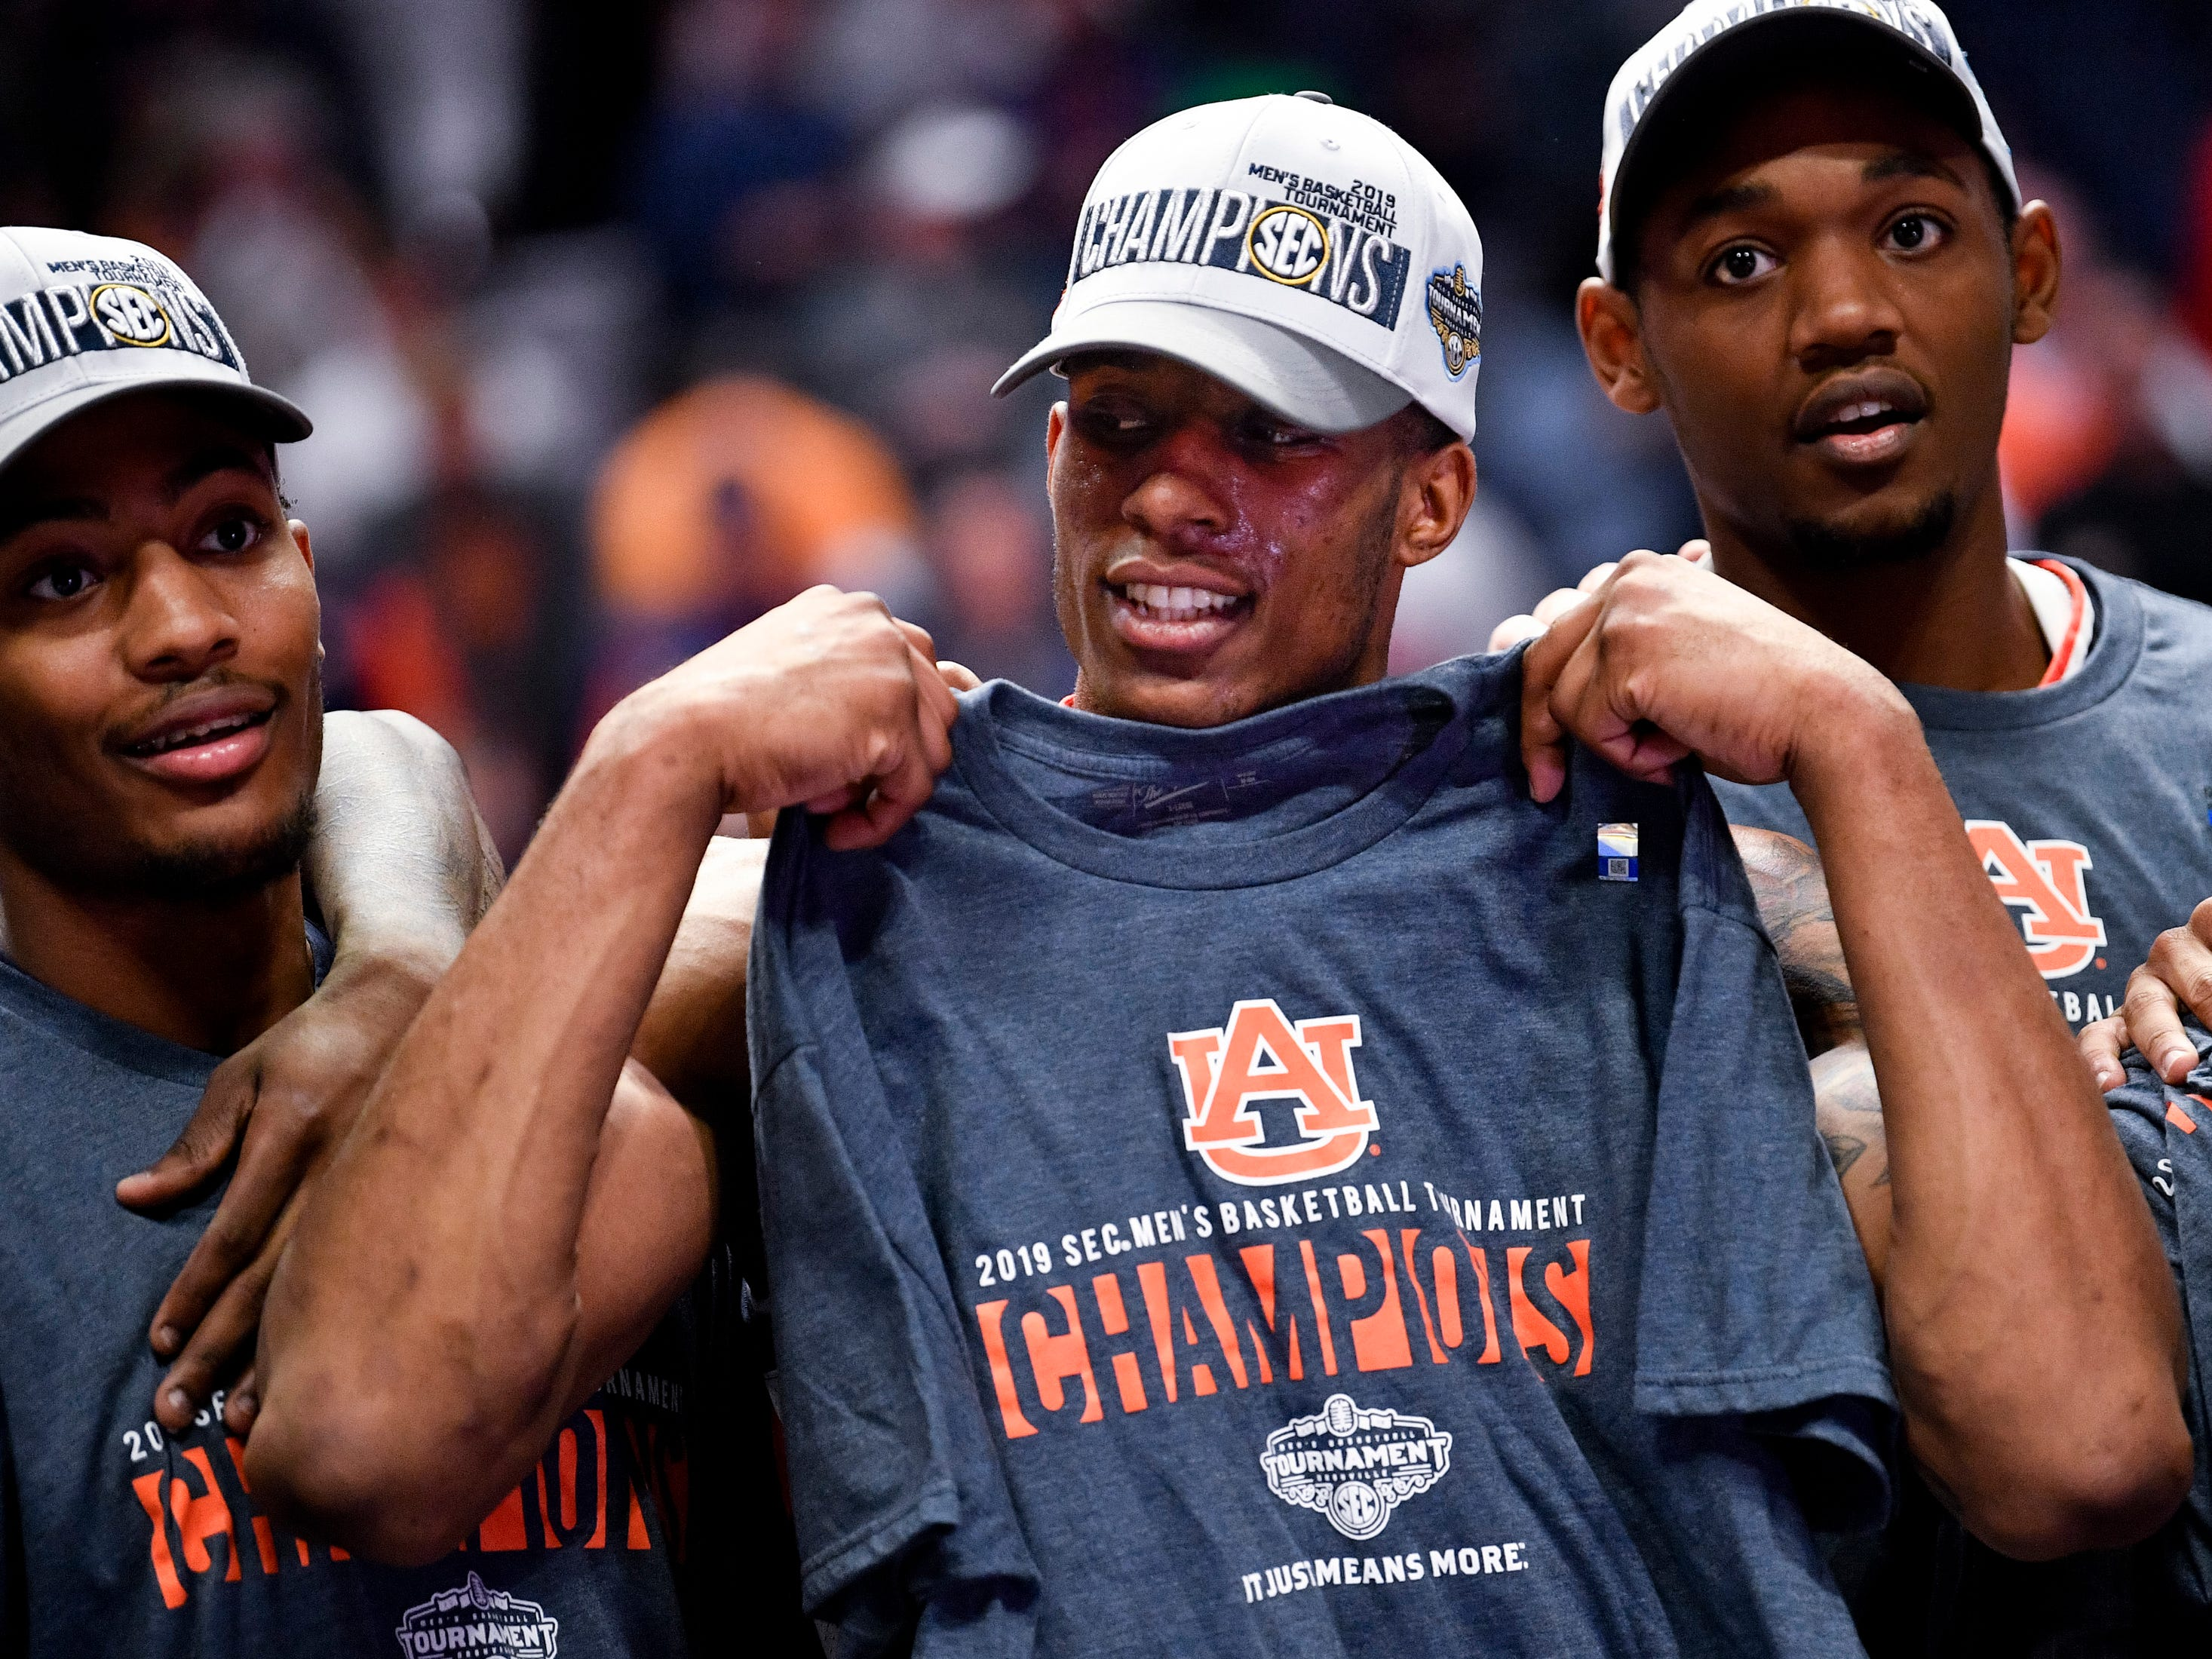 Auburn forward Horace Spencer (0) celebrates after their SEC Men's Basketball Tournament championship victory against Tennessee at Bridgestone Arena in Nashville, Tenn., Sunday, March 17, 2019.